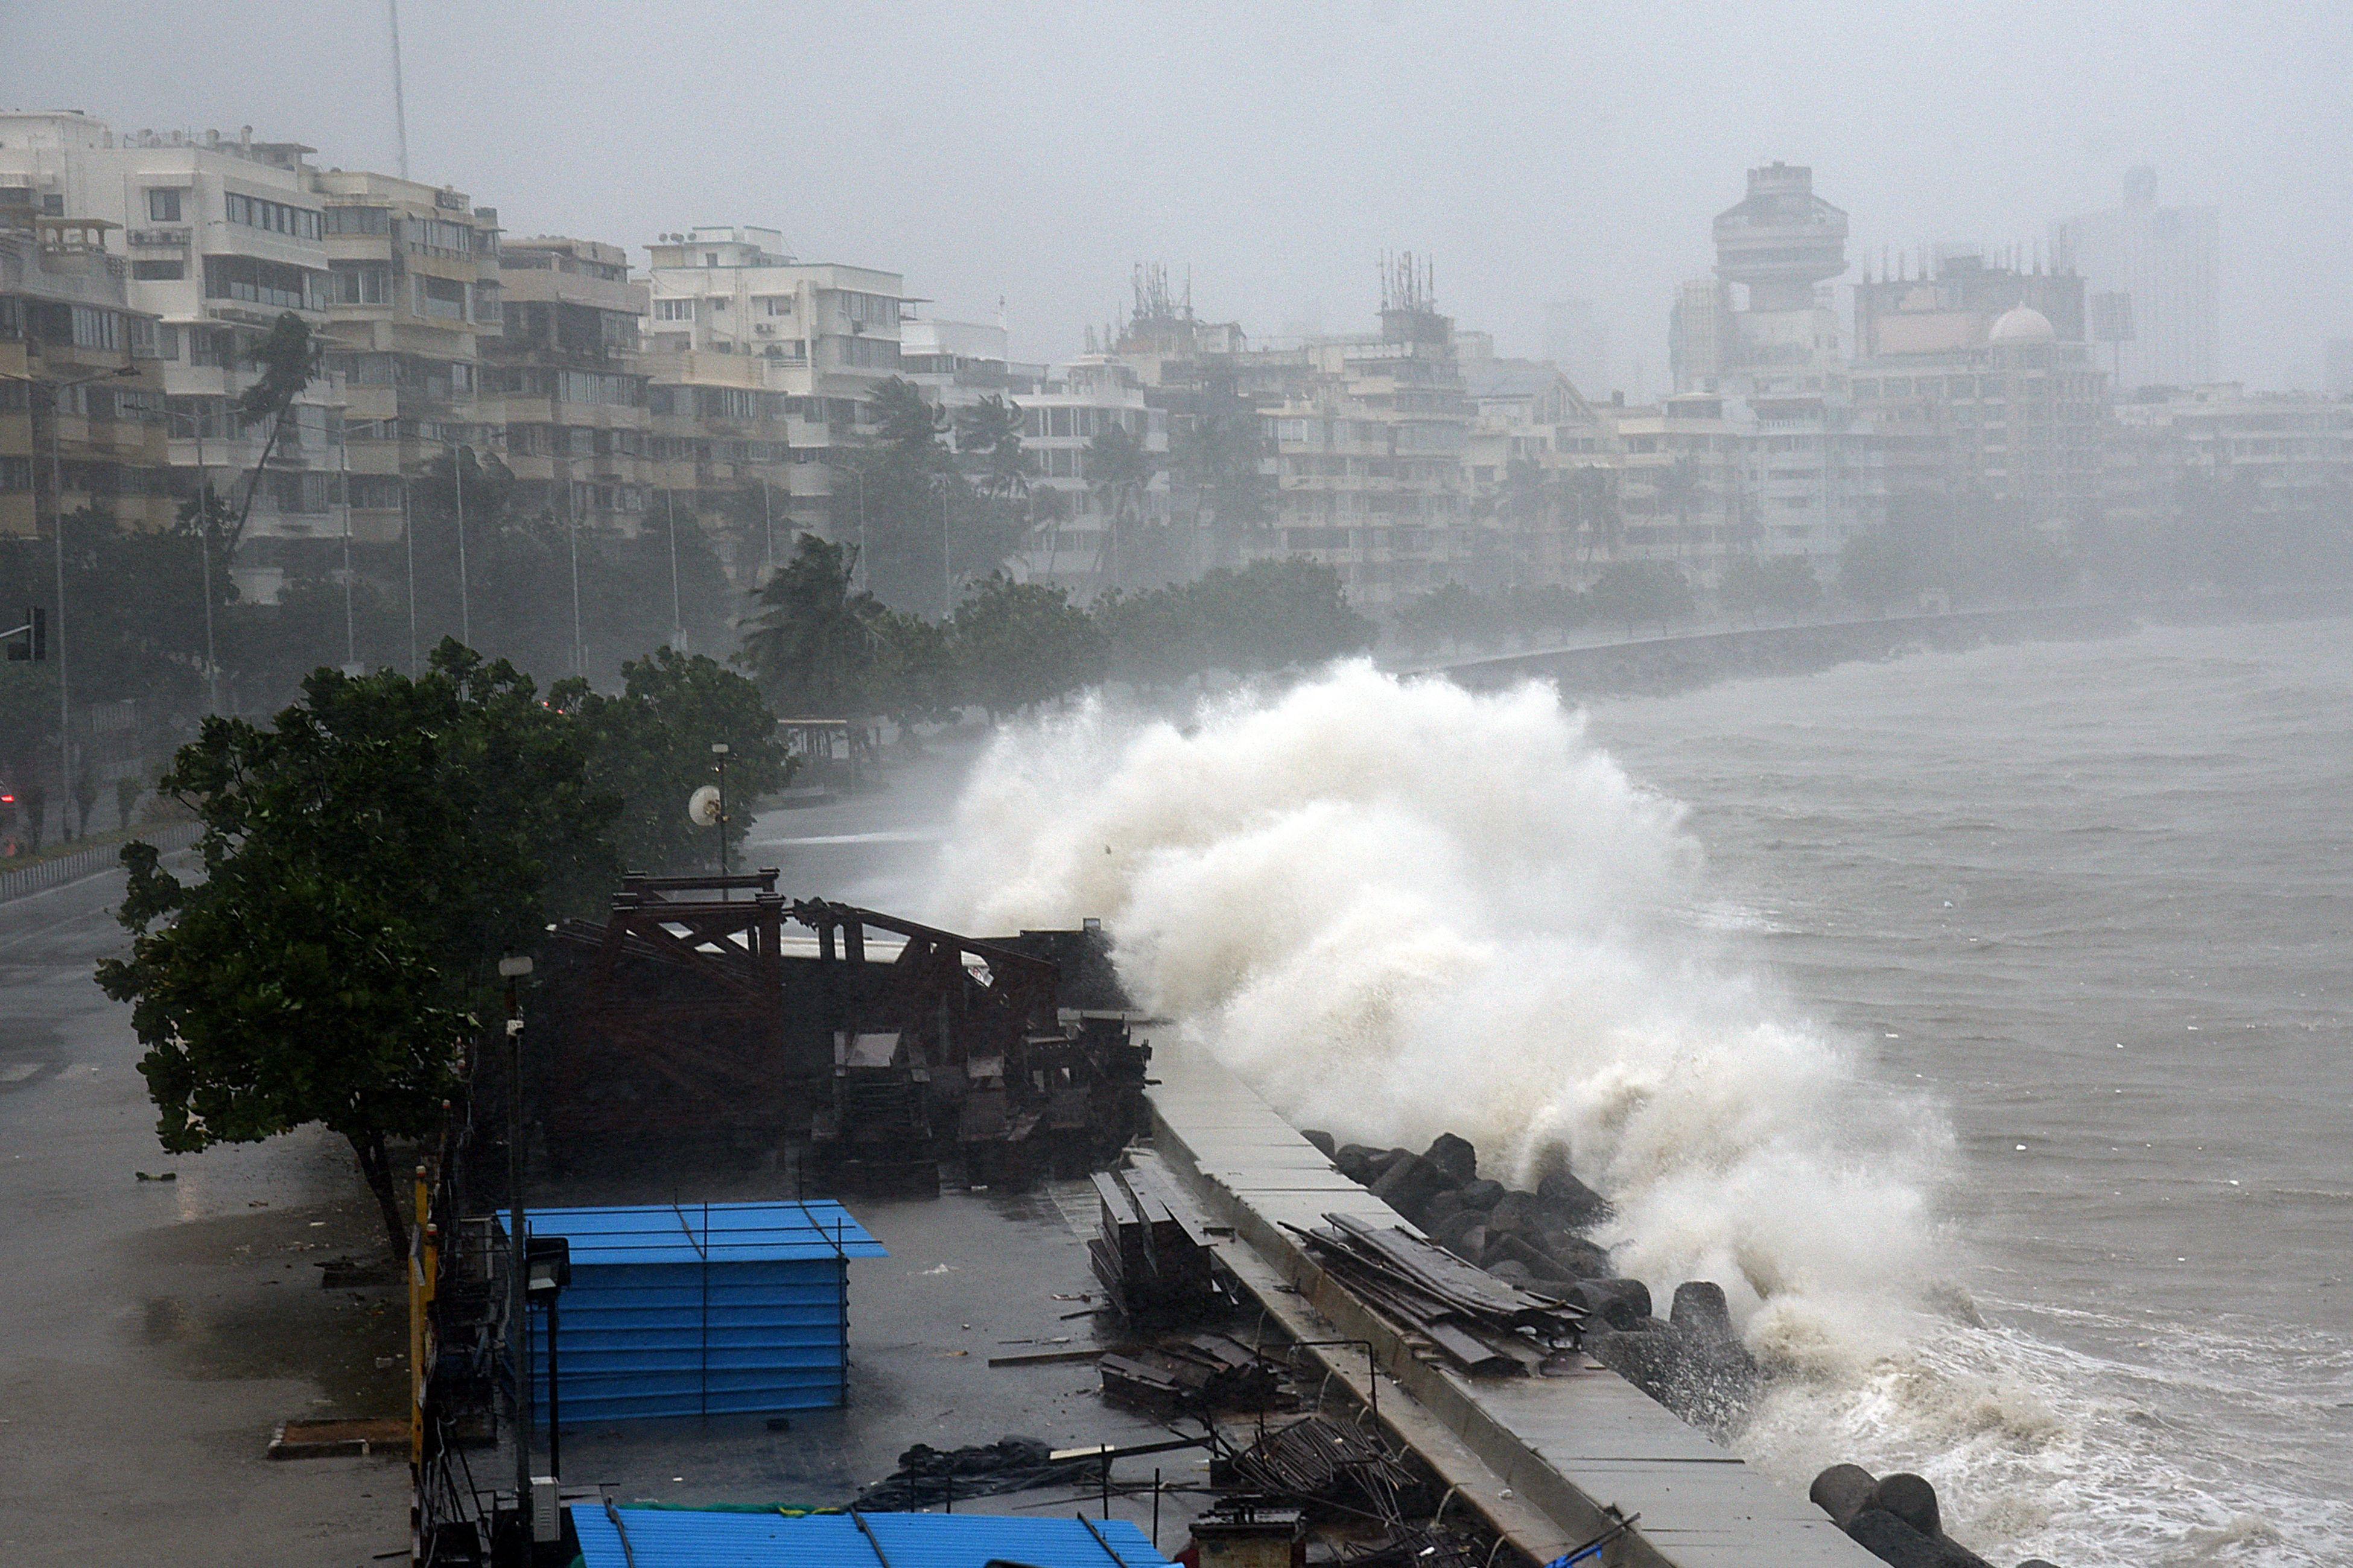 Waves lash over onto a shoreline in Mumbai on May 17, as  Cyclone Tauktae, packing ferocious winds bears down on India.